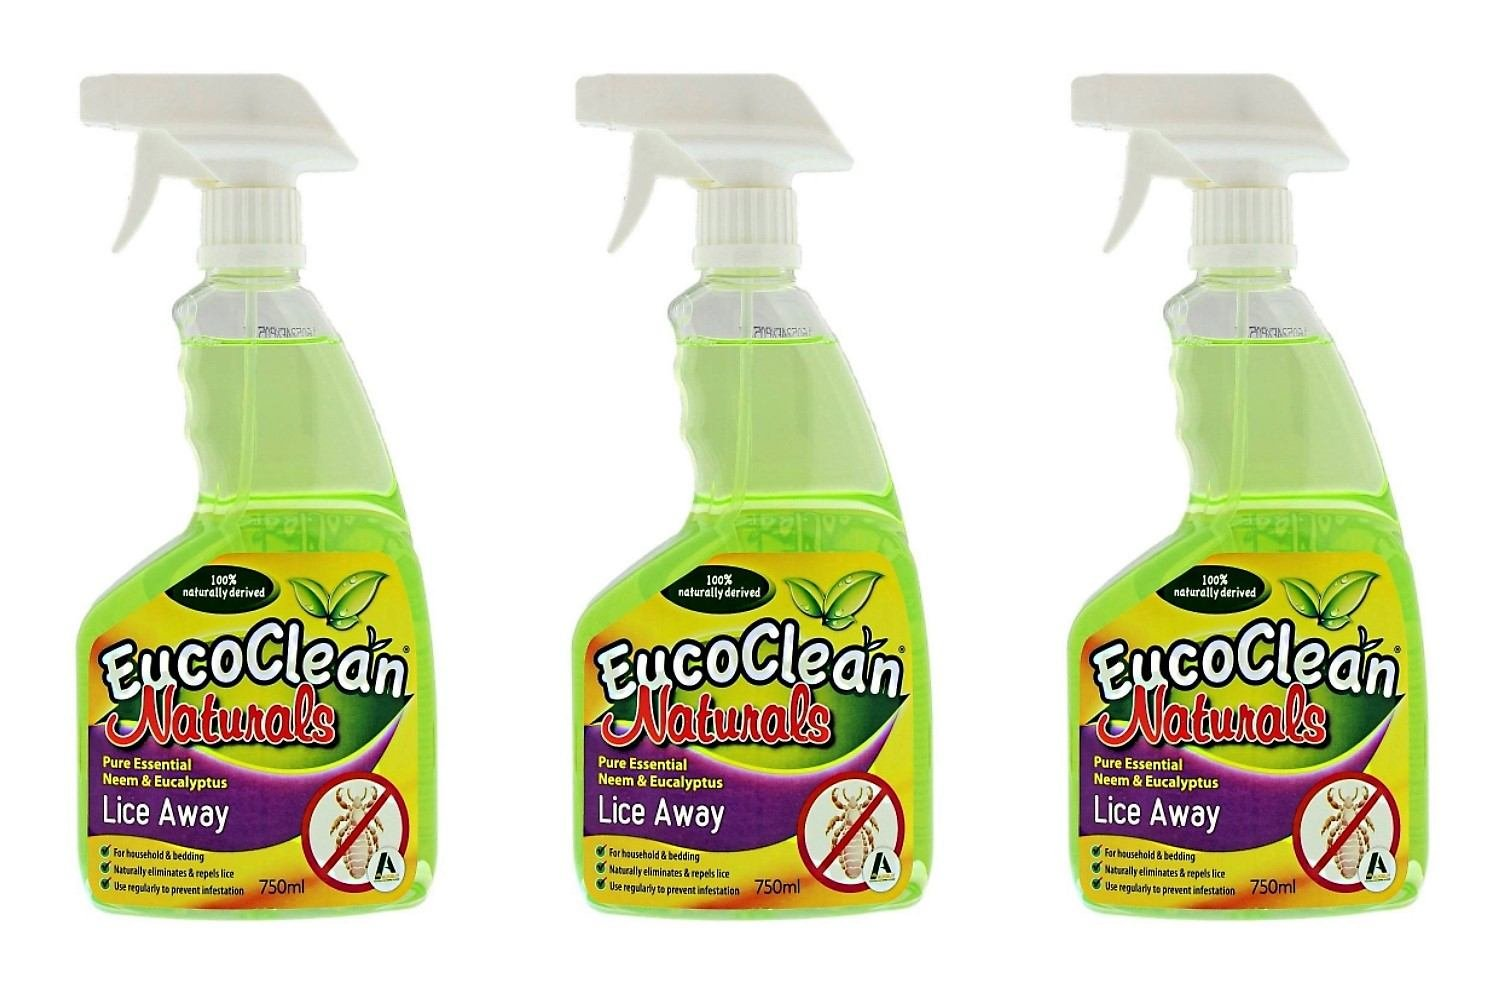 EucoClean Naturals Lice Away - Pure Essential Neem & Eucalyptus treatment for Home, Beds and More! Natural Ingredients eliminate, repel, and prevent lice. FAST! 25.4fl oz Spray Bottle (Pack of 3)